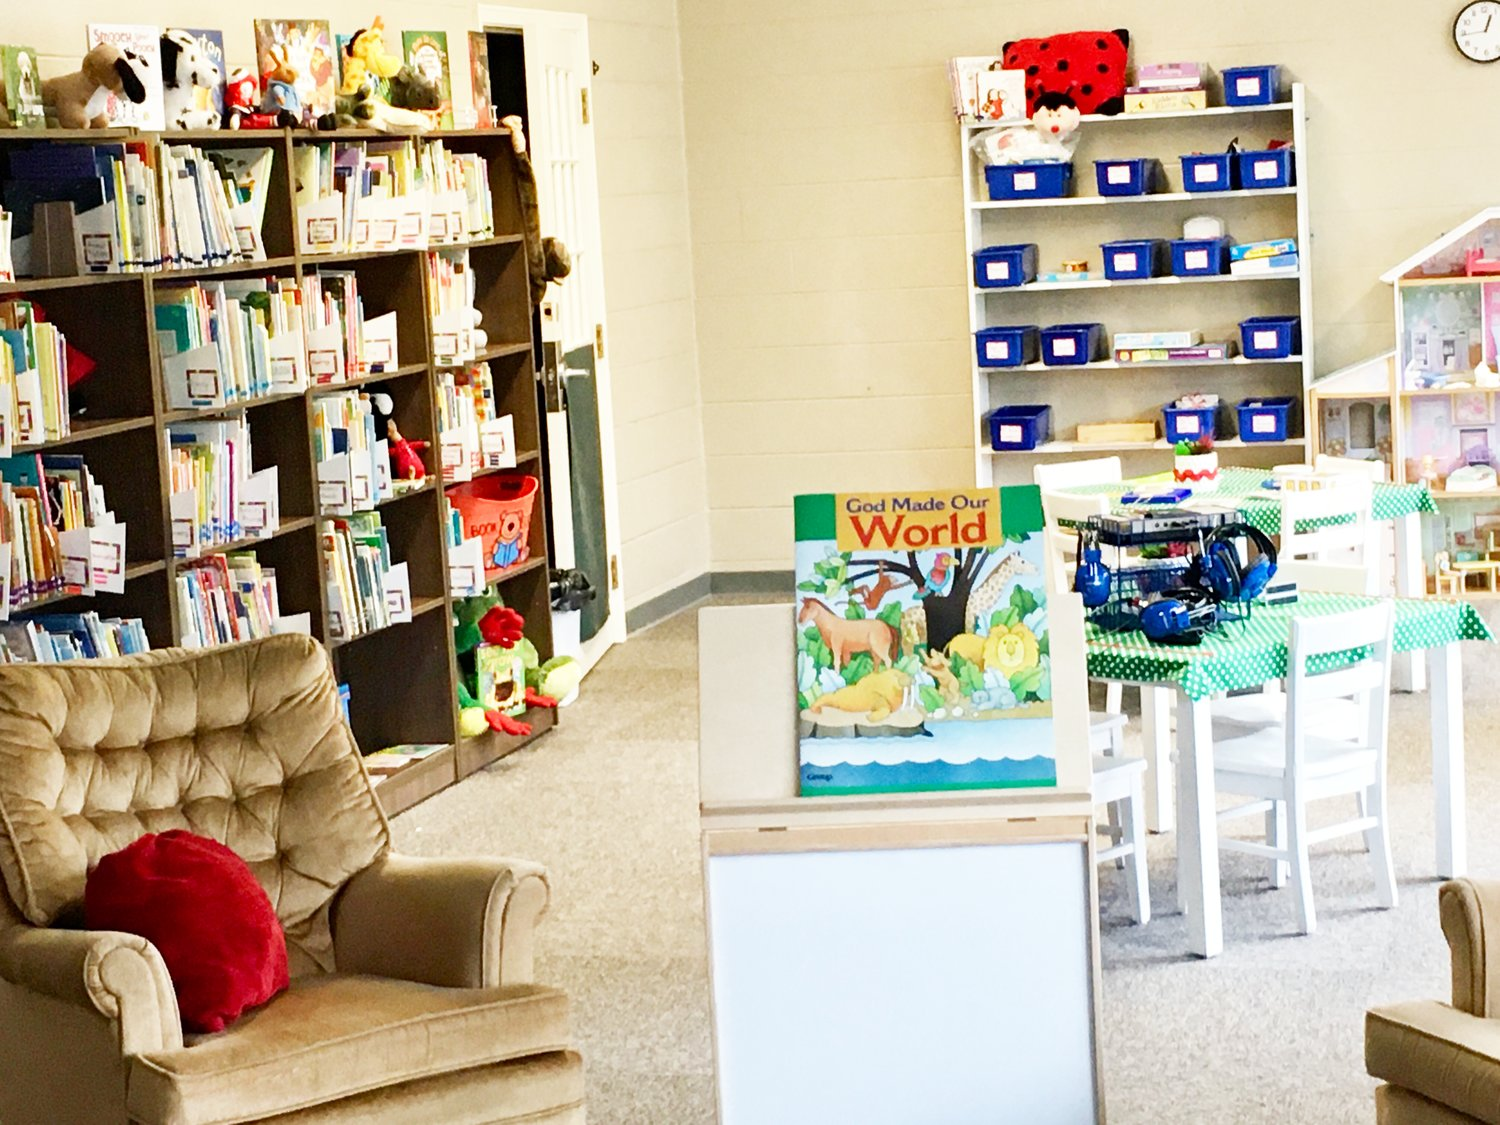 The library at Rainbows and Rhymes Preschool and Child Care was expanded as part of renovations to prepare the facility for all-day programming. Sessions began this week.